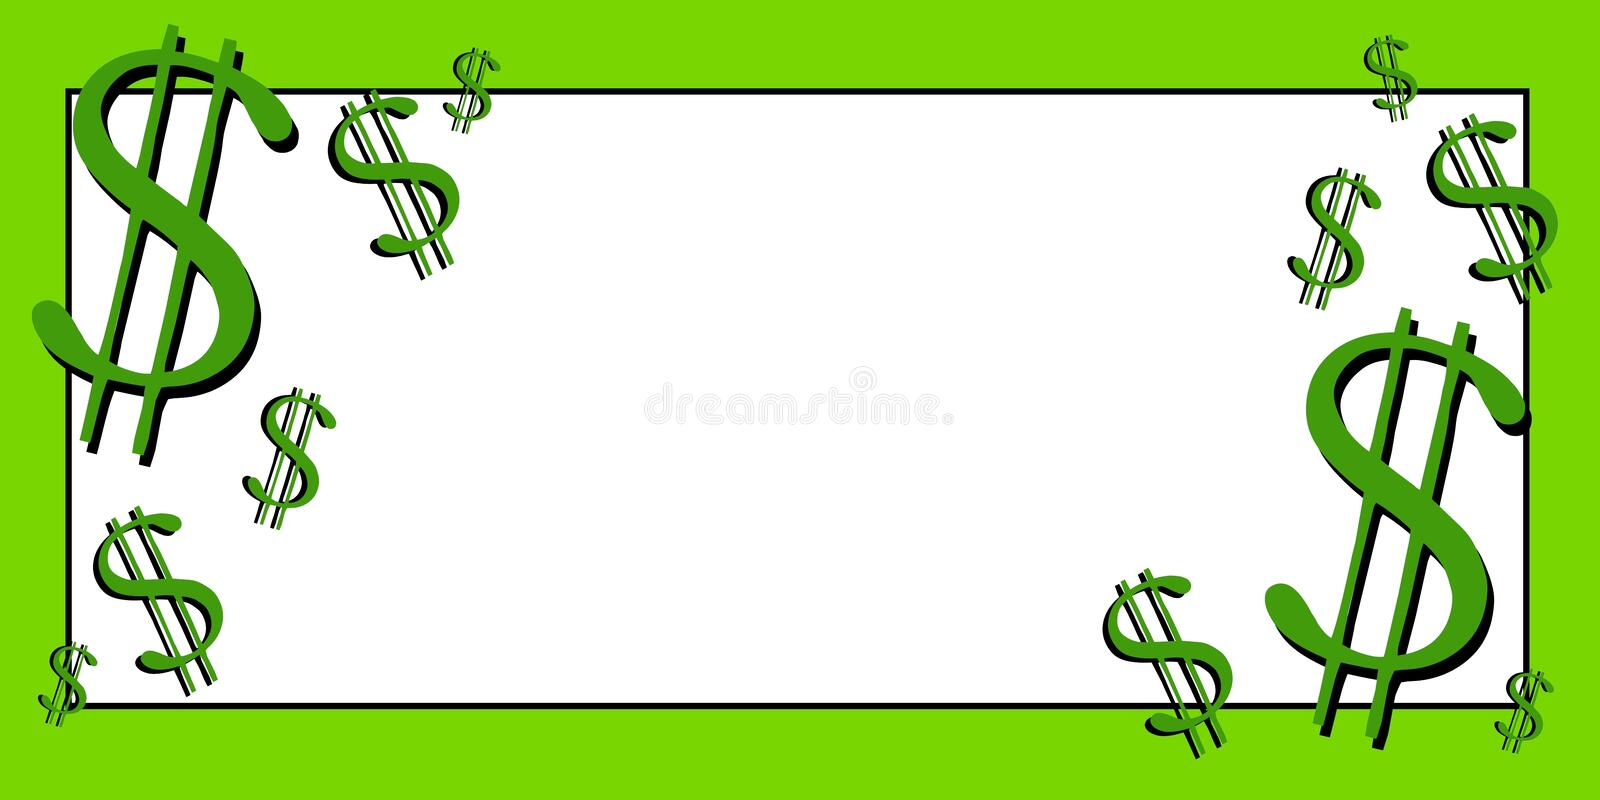 Dollar Signs Money Clip Art 3. A clip art illustration of a banner featuring dollar signs in green with ample white space for your own text